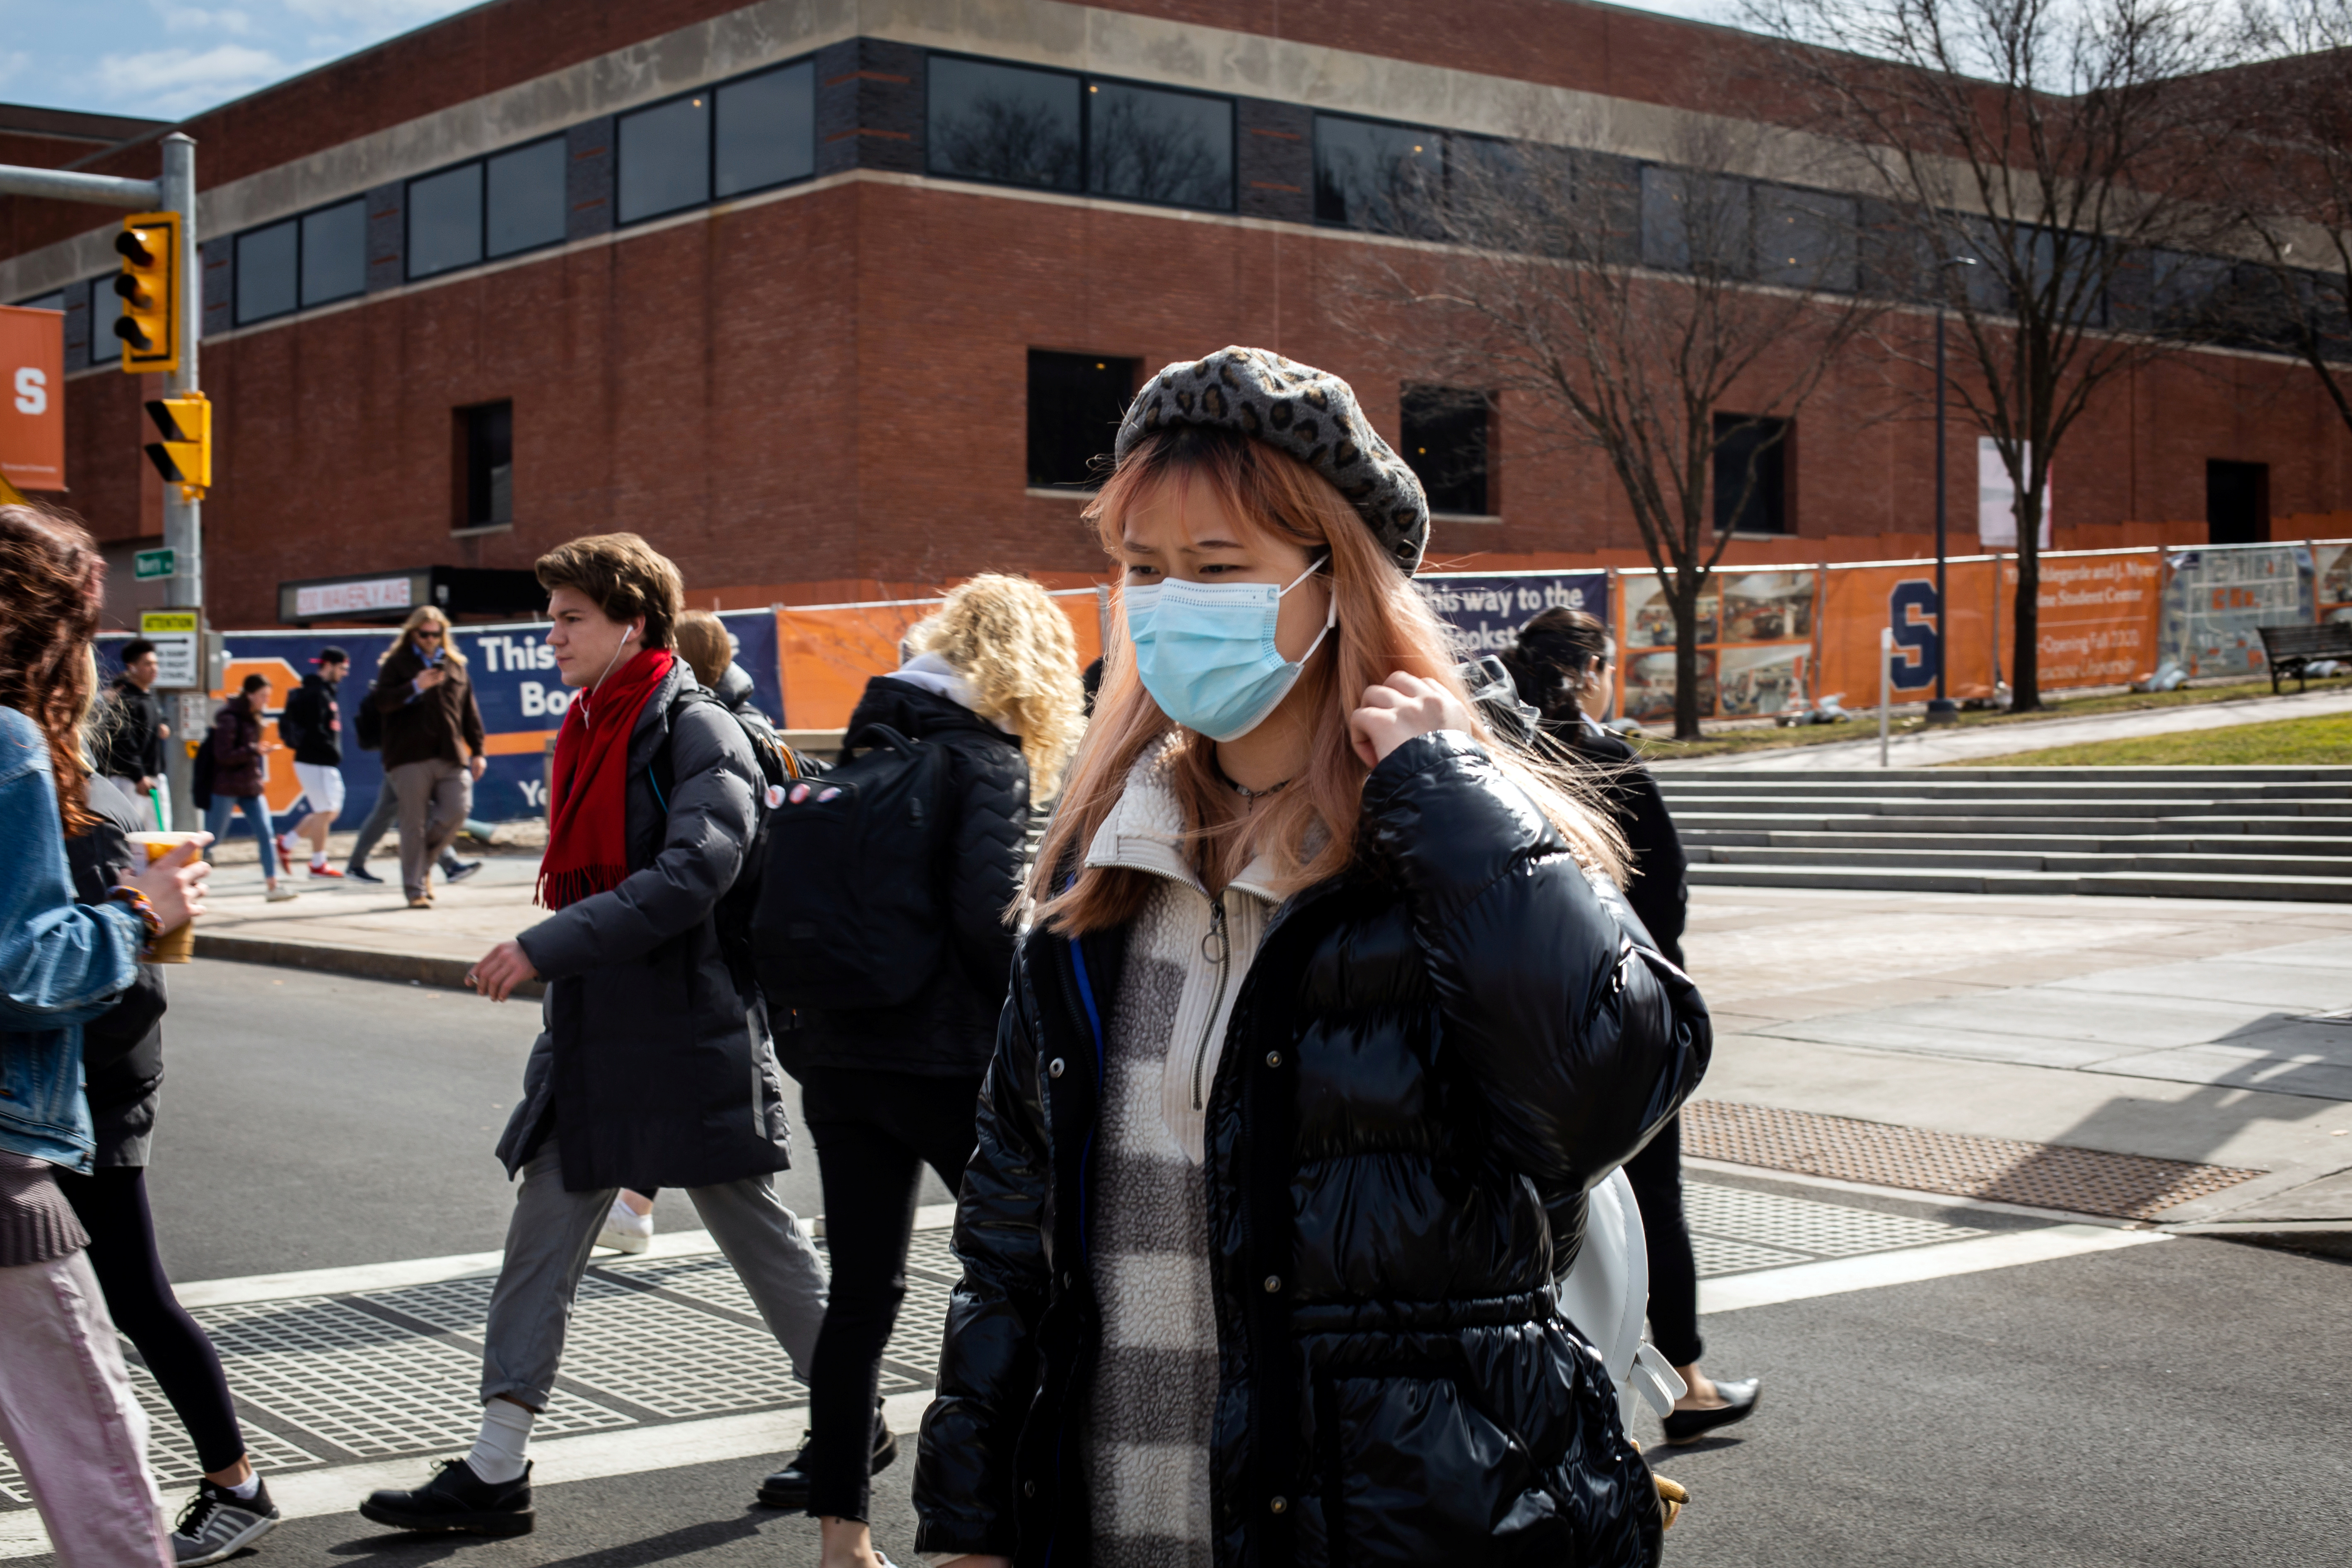 A woman wears a mask at Syracuse University, New York, U.S., March 12, 2020. REUTERS/Maranie Staab